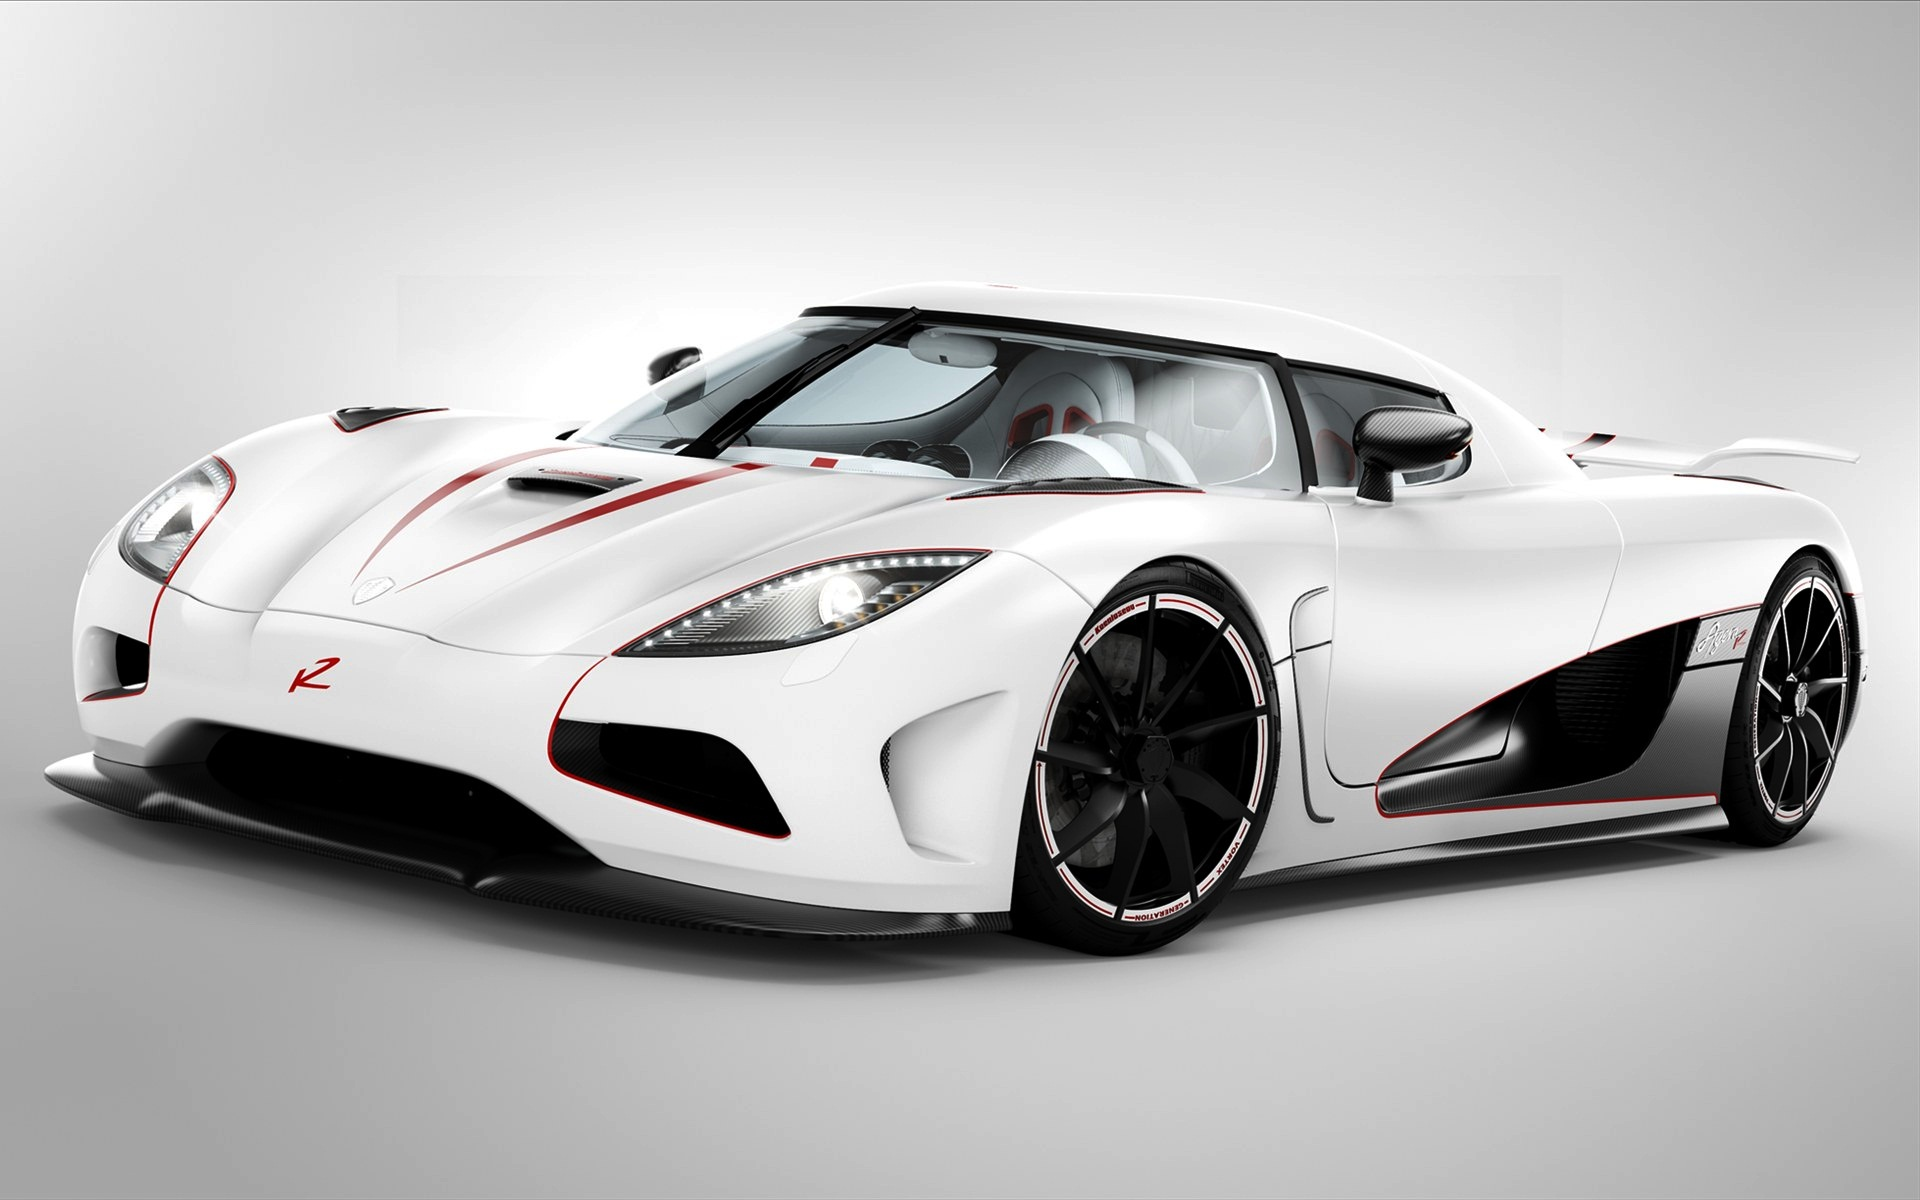 2012 Koenigsegg Agera Wallpapers HD Wallpapers 1920x1200